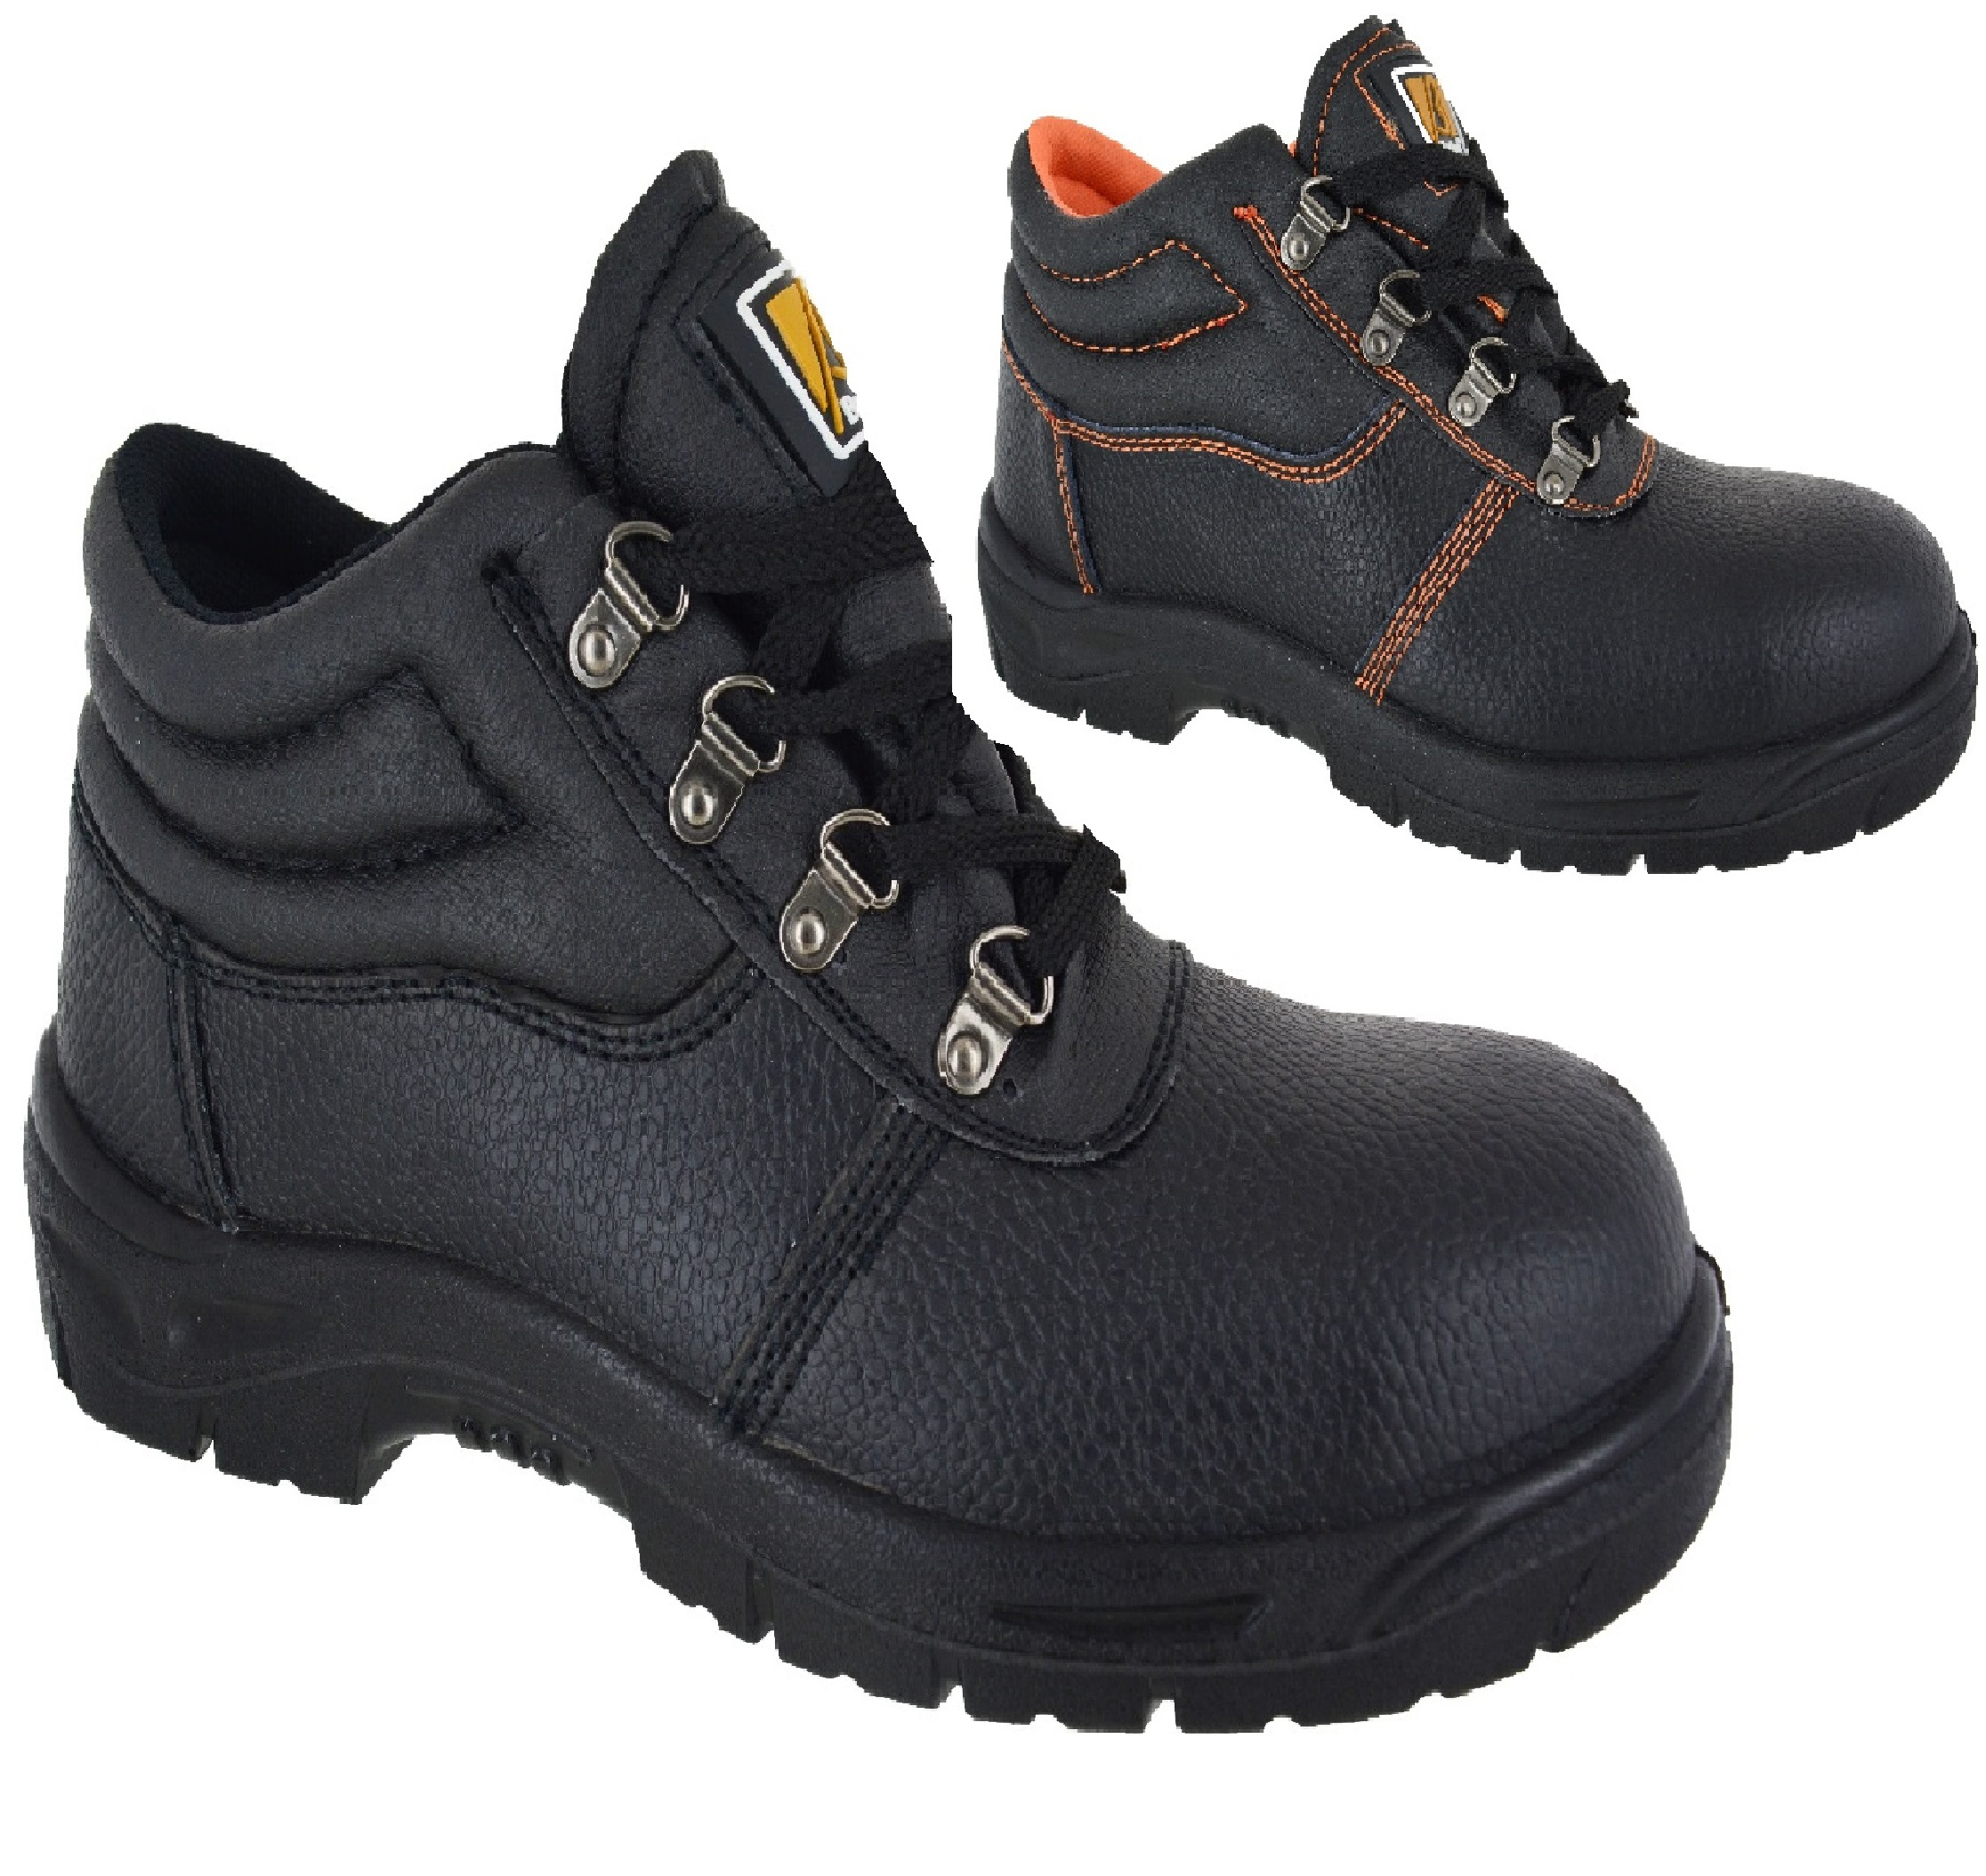 MENS STEEL TOE CAP BLACK LEATHER WORK BOOTS SAFETY LACE UP LIGHT WEIGHT SHOES SZ